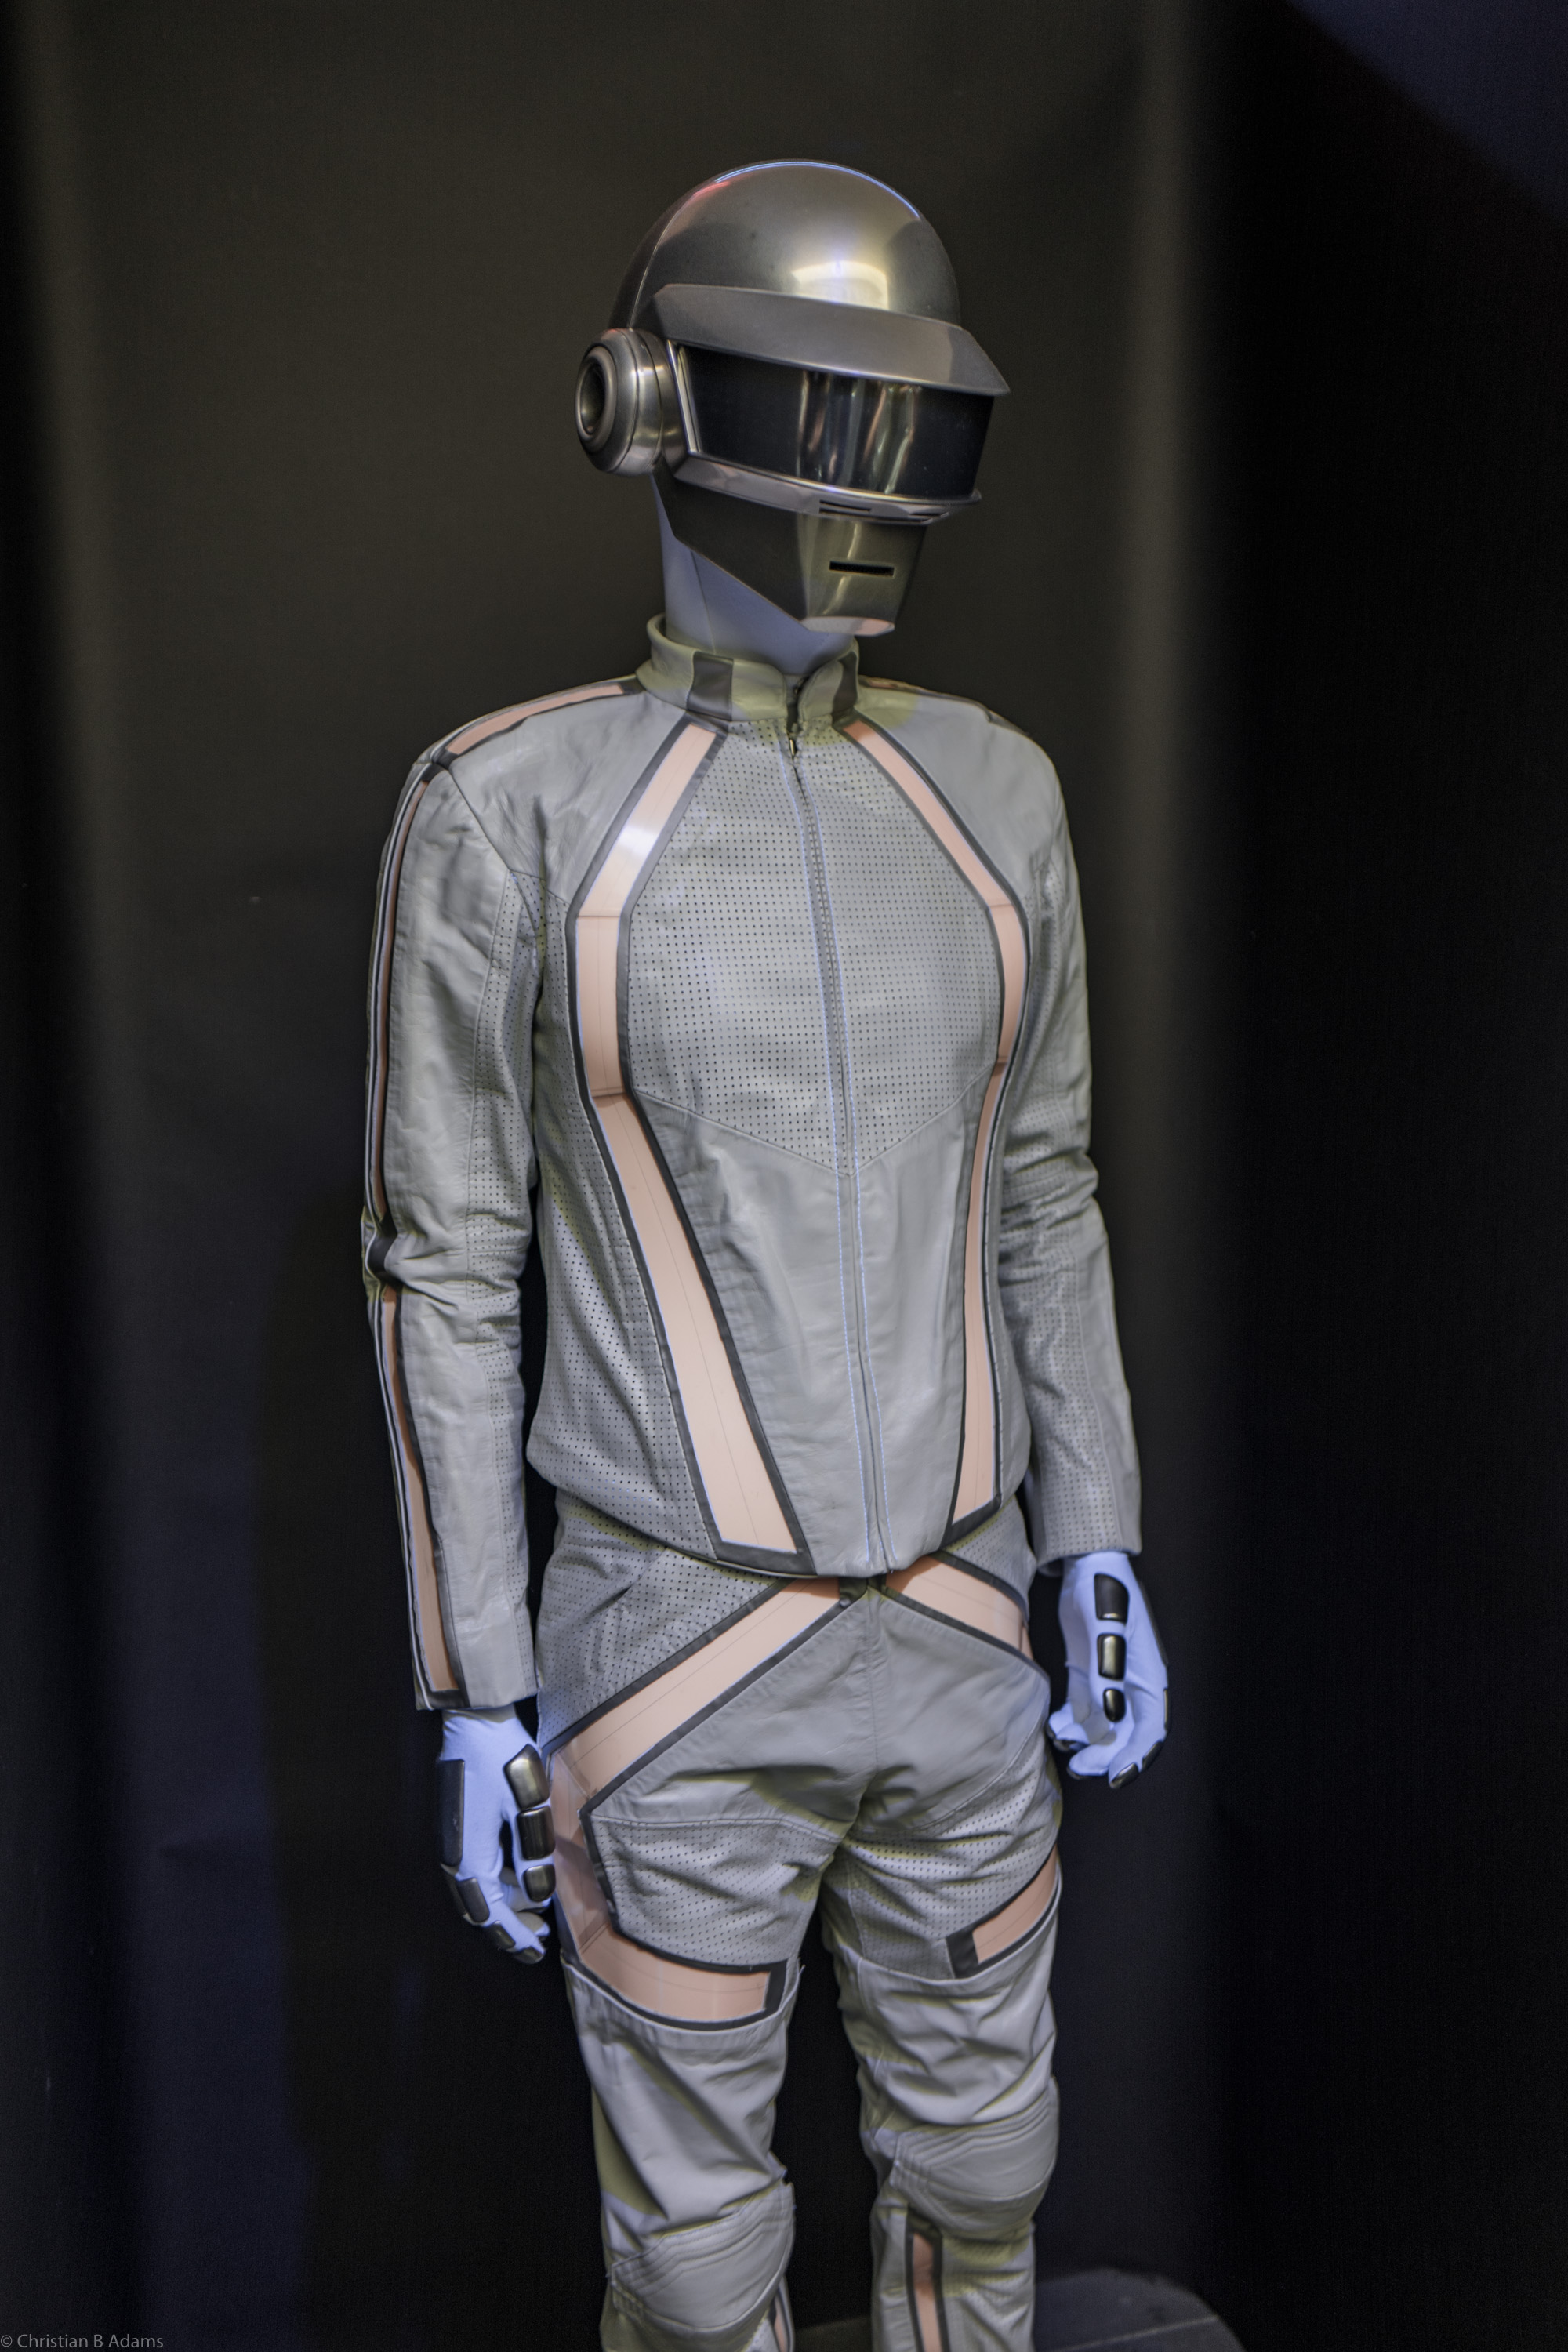 Thomas Bangalter's Tron: Legacy cameo robot costume at the Daft Punk Pop Up at Maxfield Gallery Los Angeles in February of 2017.